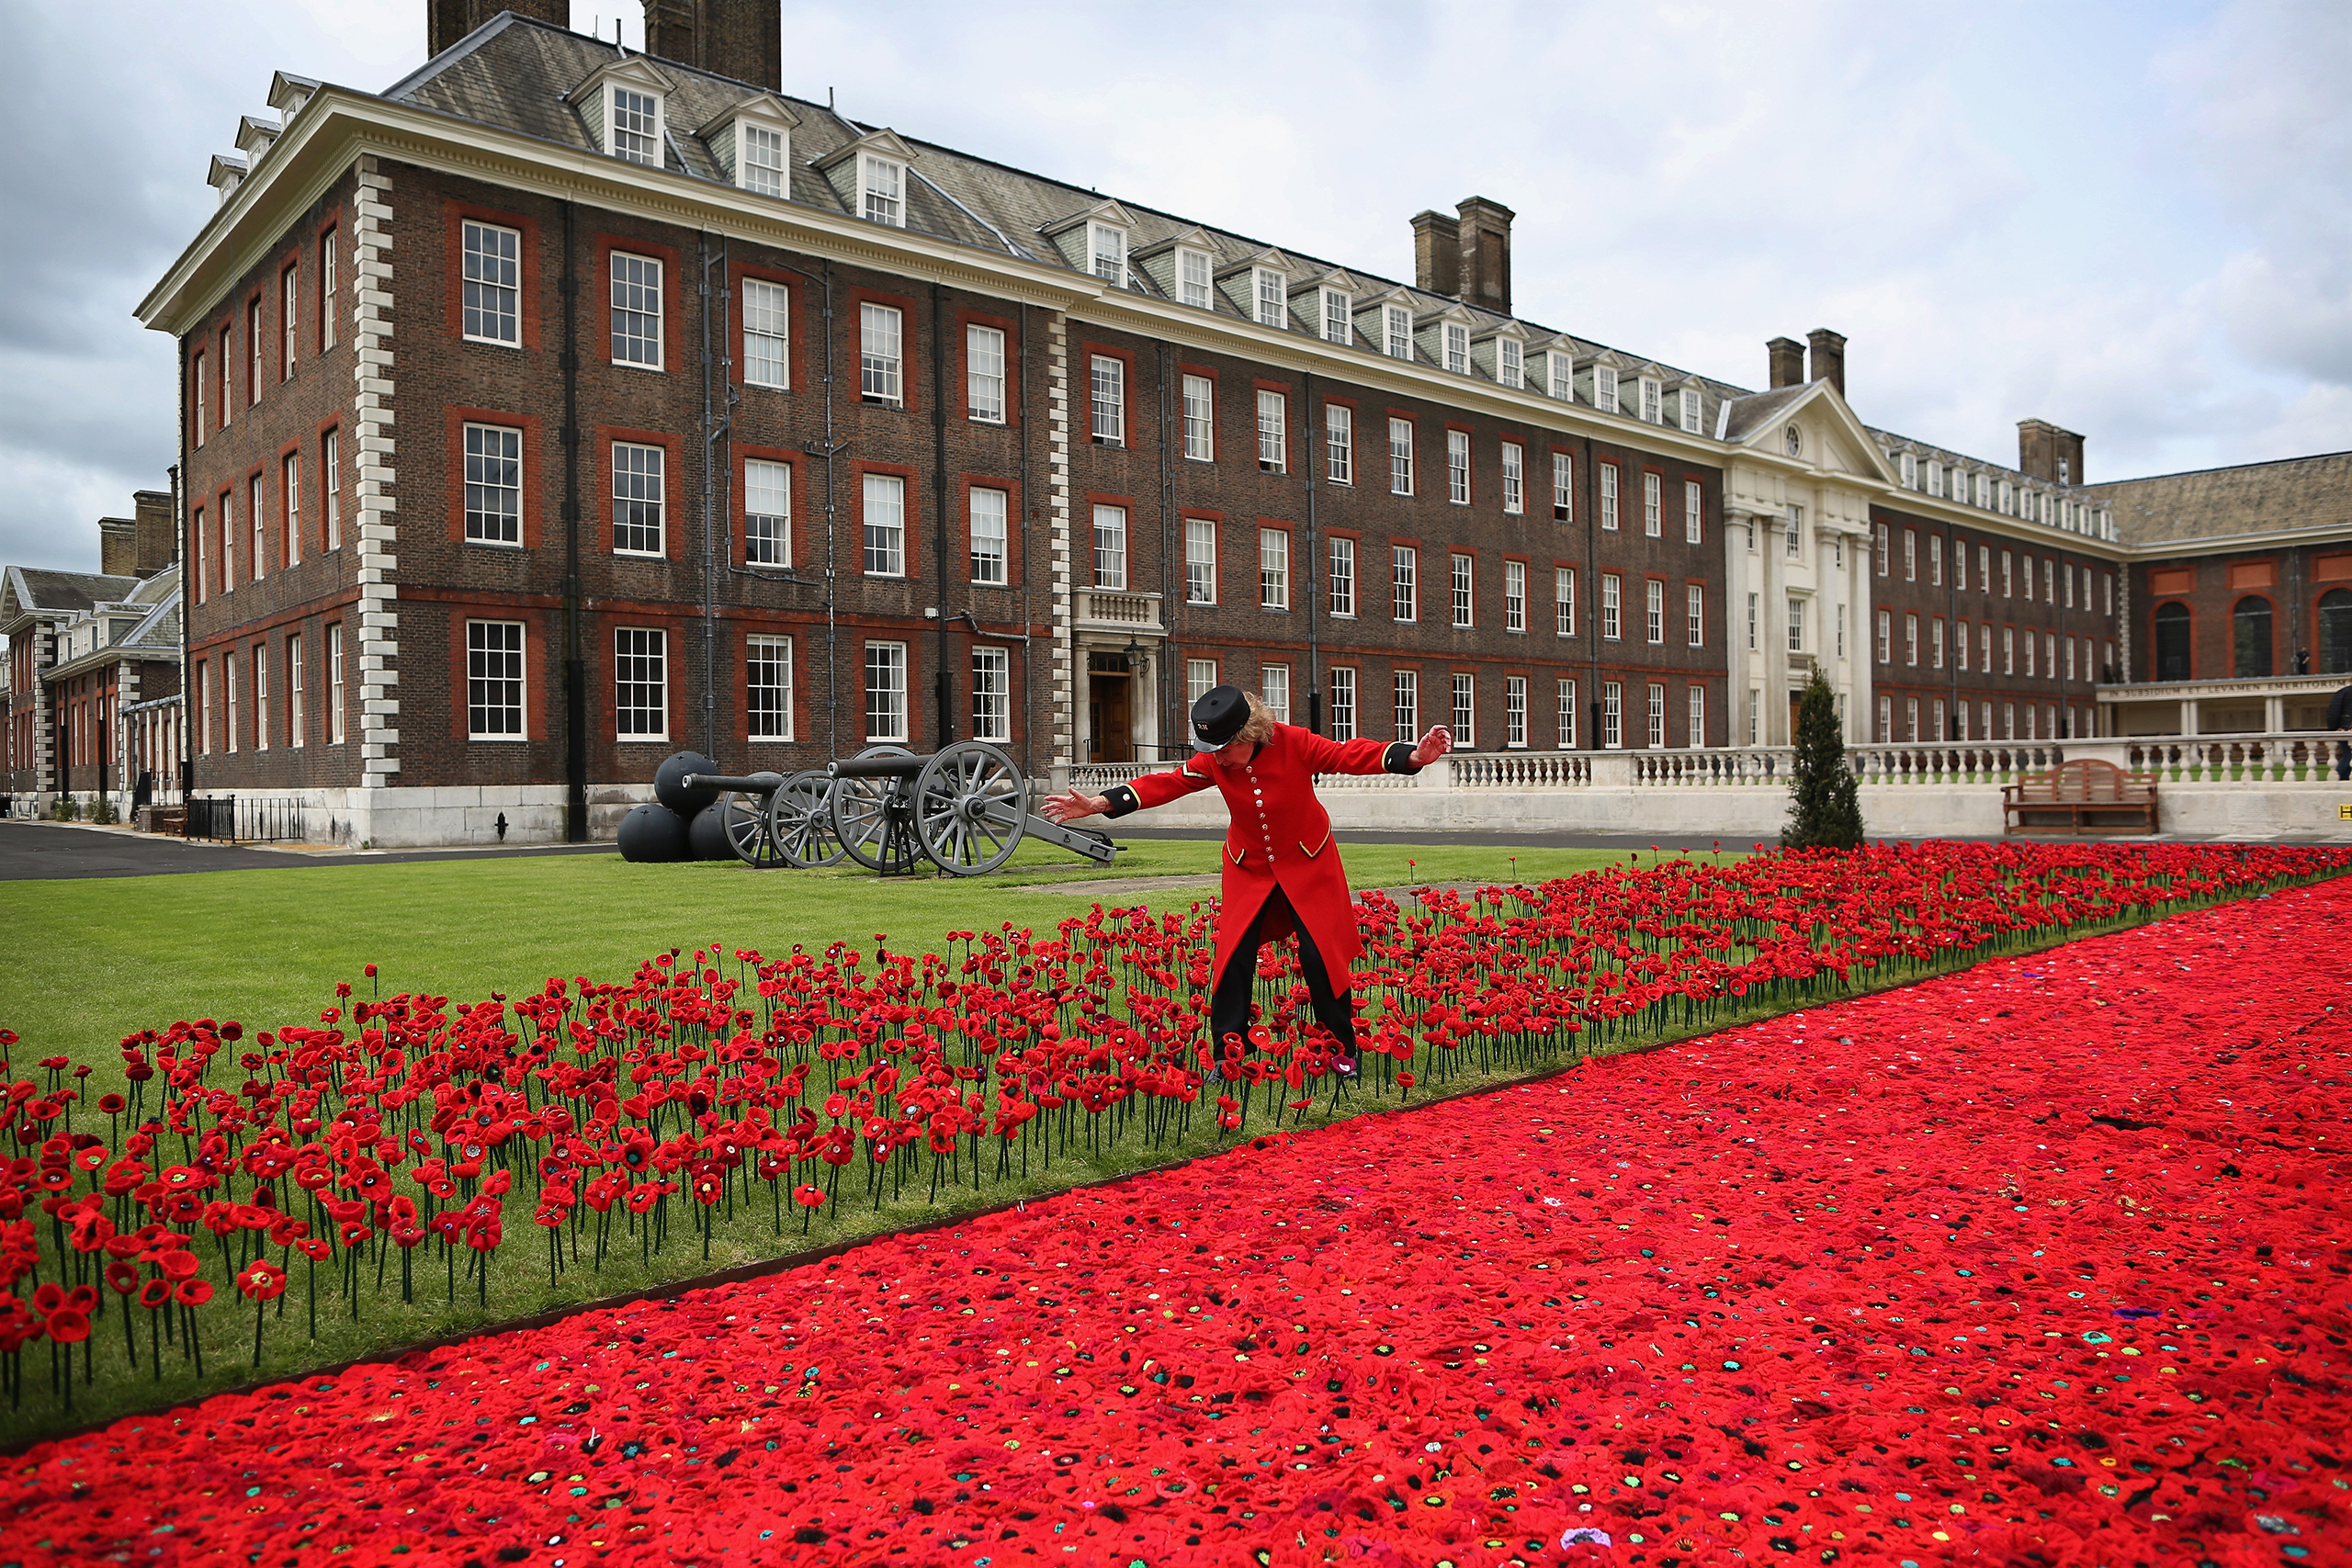 Chelsea Pensioner Gillian McDonald picks her way through an installation of Poppies while positioning herself for a photograph at Royal Hospital Chelsea in London on May 20, 2016.